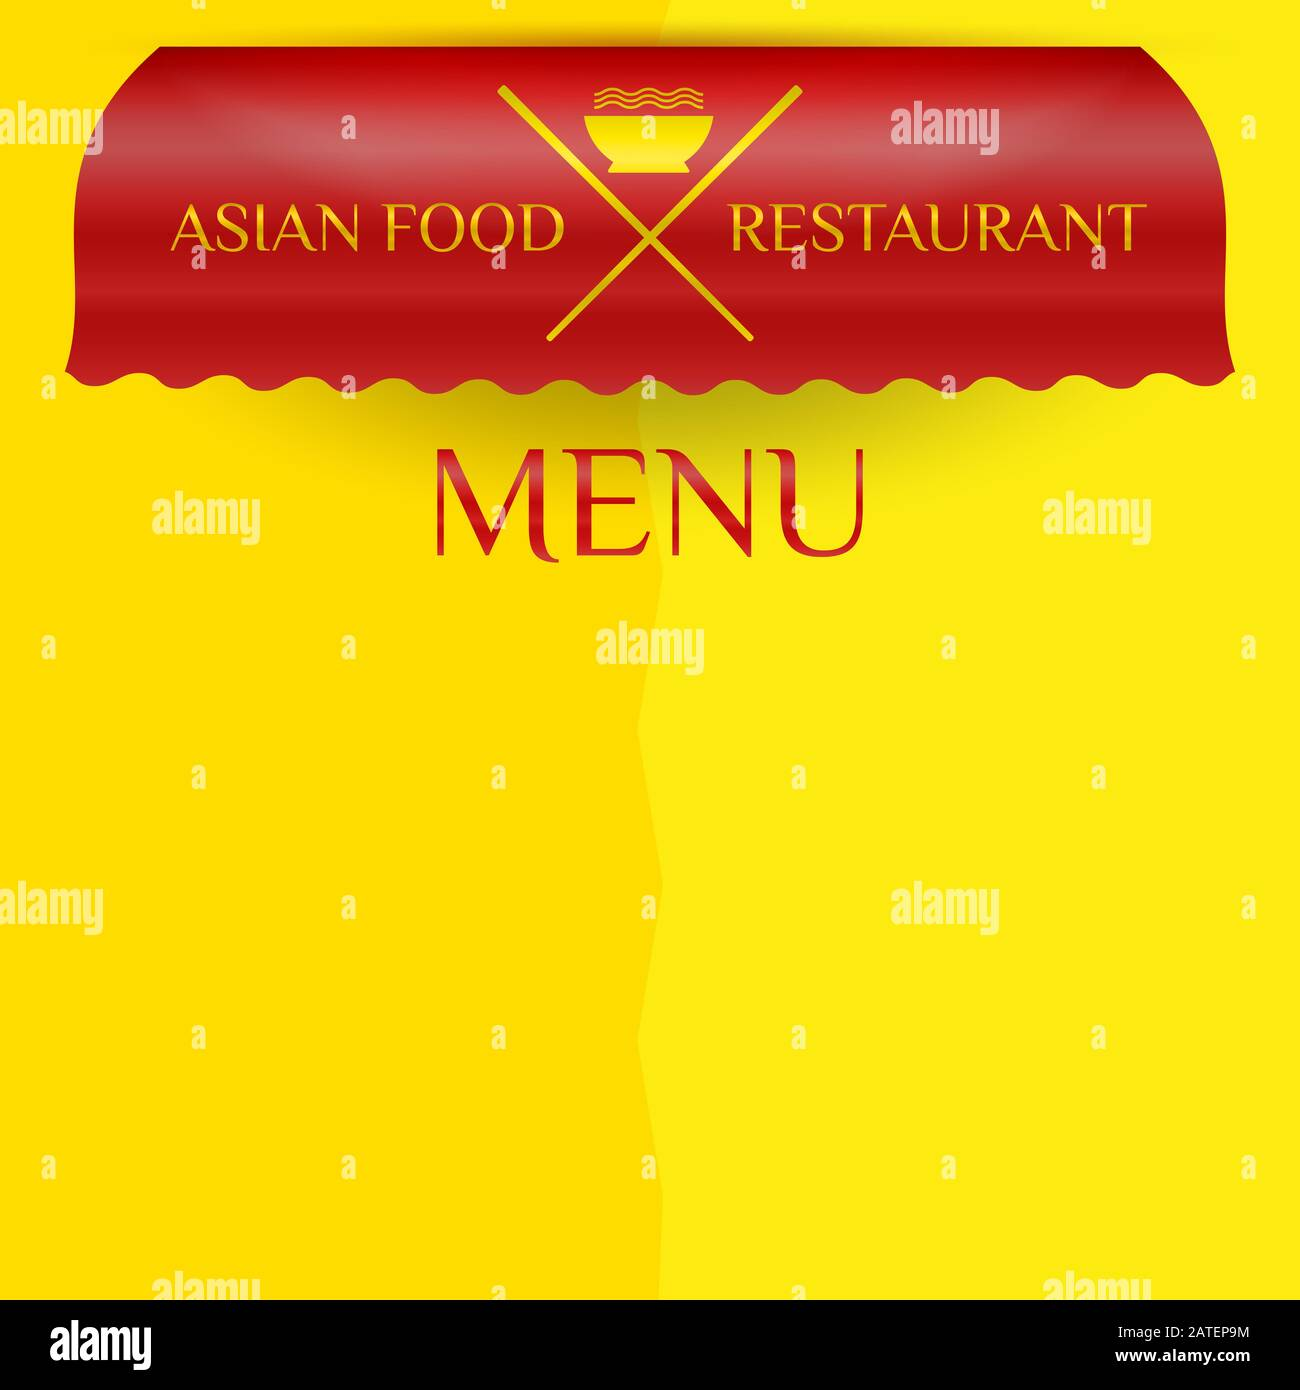 Asian Food Restaurant Commercial Awning Market Cafe Or Restaurant Menu Template Red Awning Isolated On Yellow Background Crossed Chopsticks Icon Stock Photo Alamy